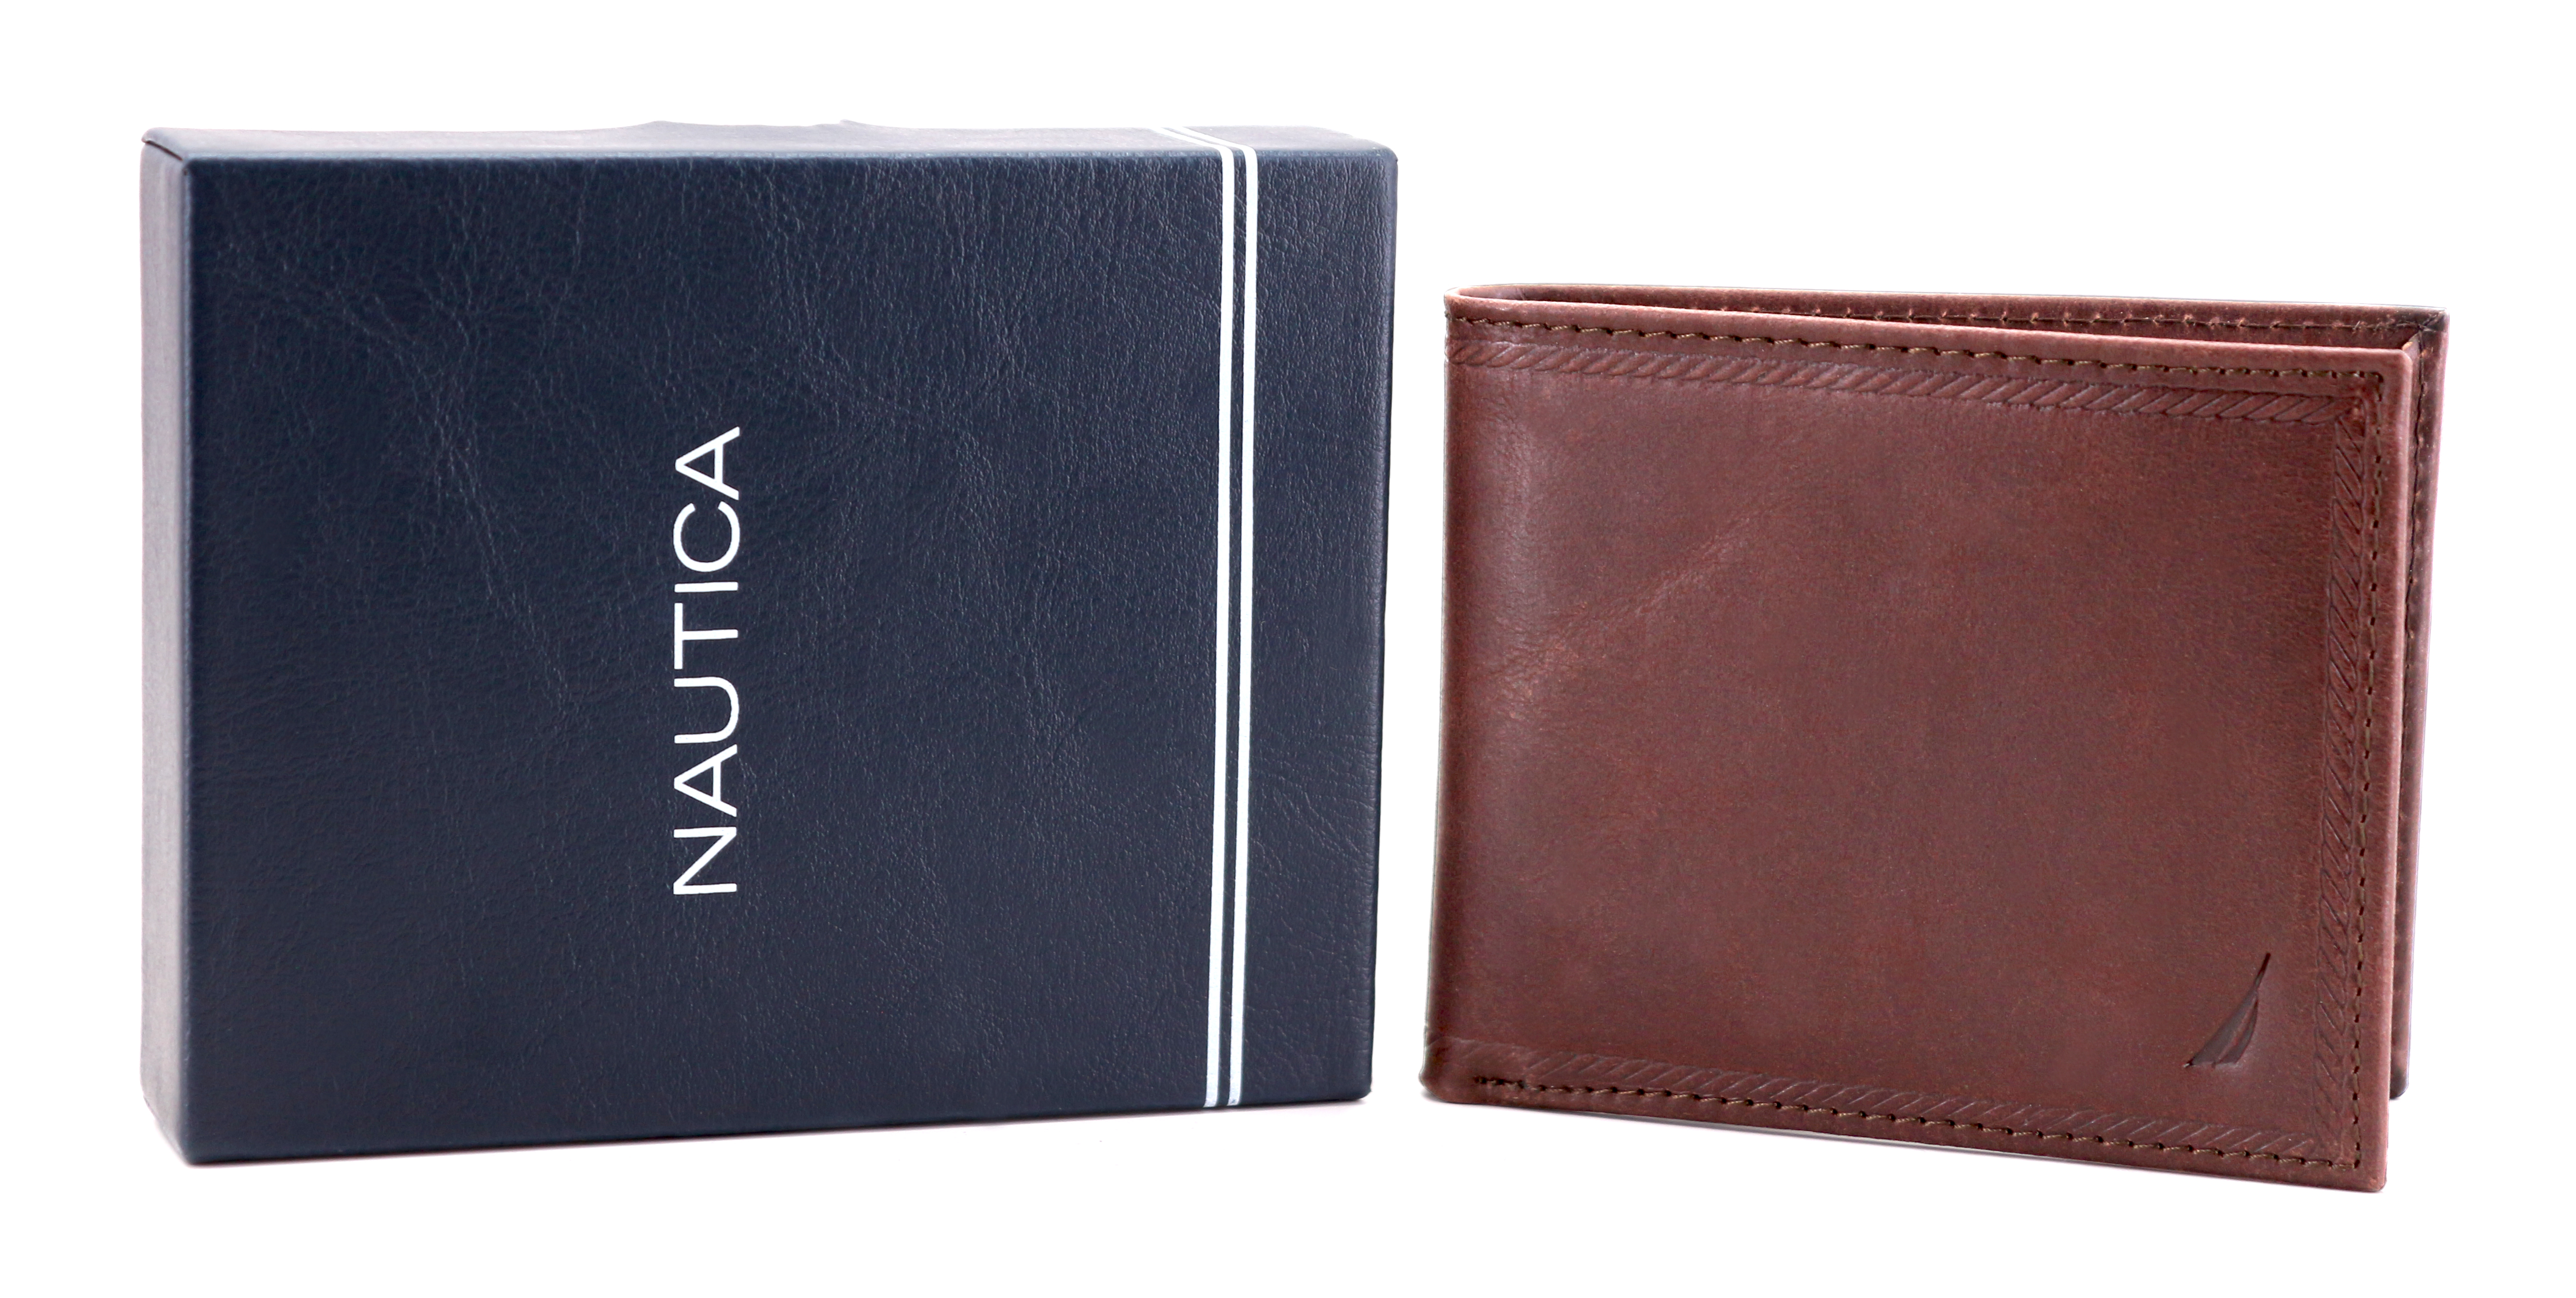 Nautica-Men-039-s-Genuine-Vintage-Leather-Credit-Card-ID-Billfold-Passcase-Wallet thumbnail 16